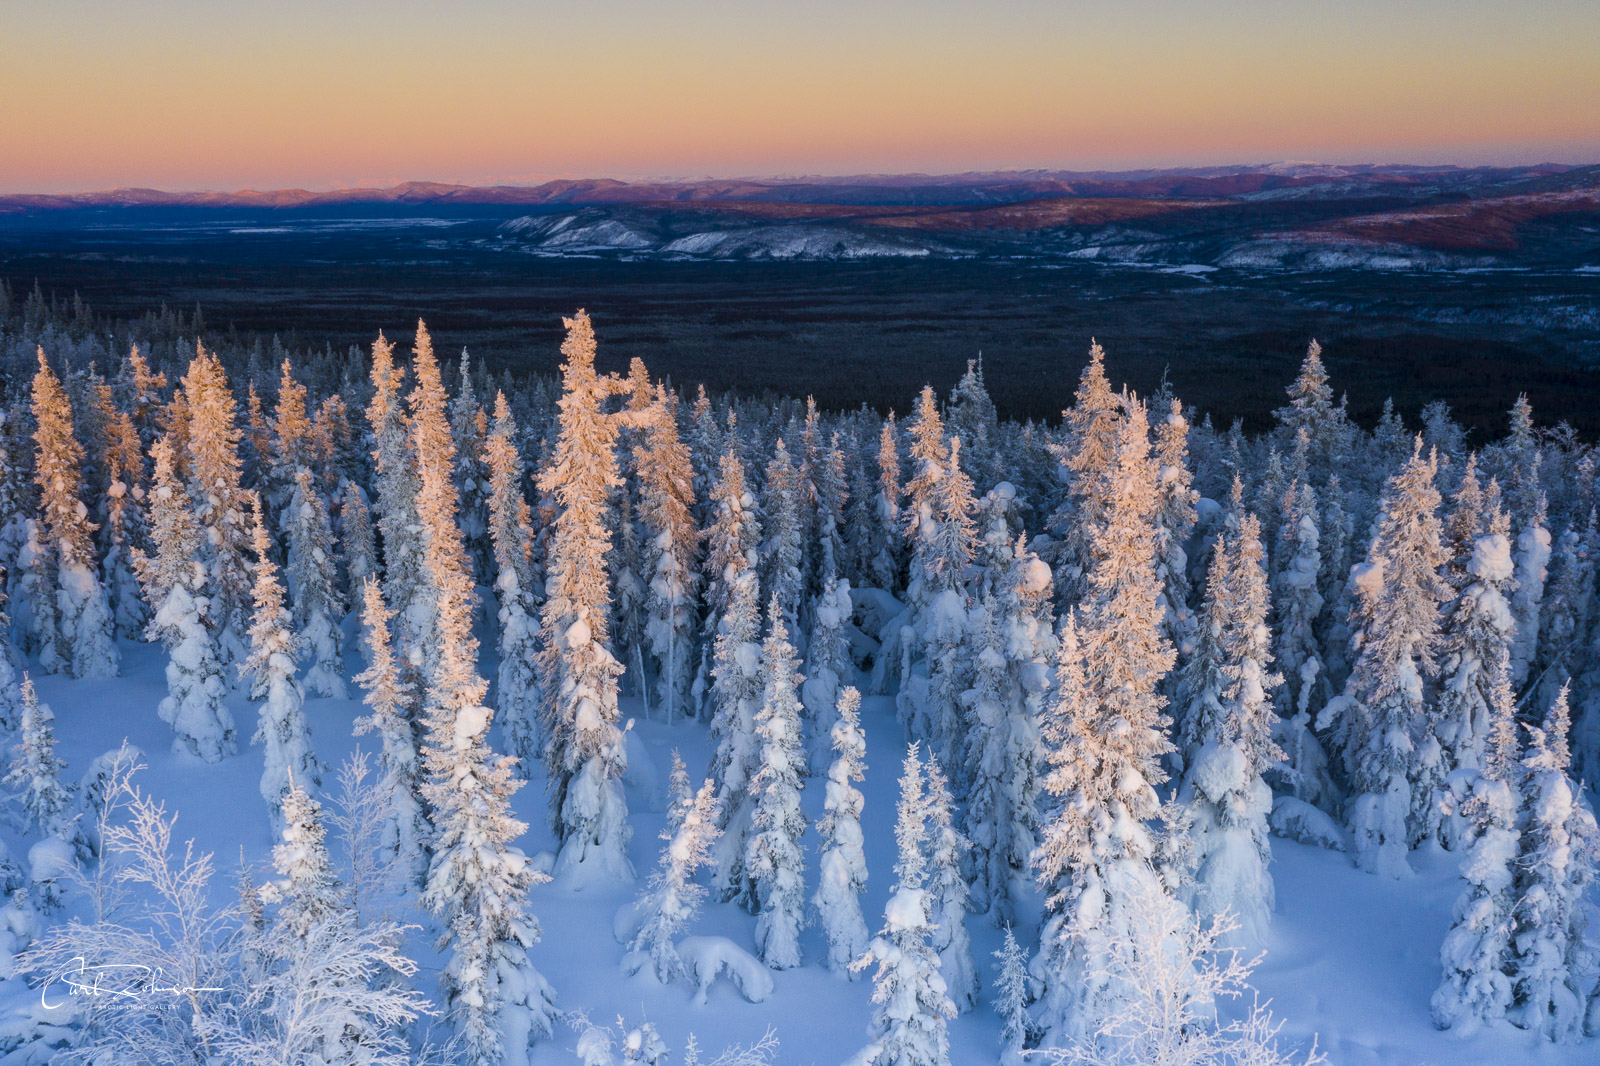 A cluster of snowy trees catch the last light of the evening.